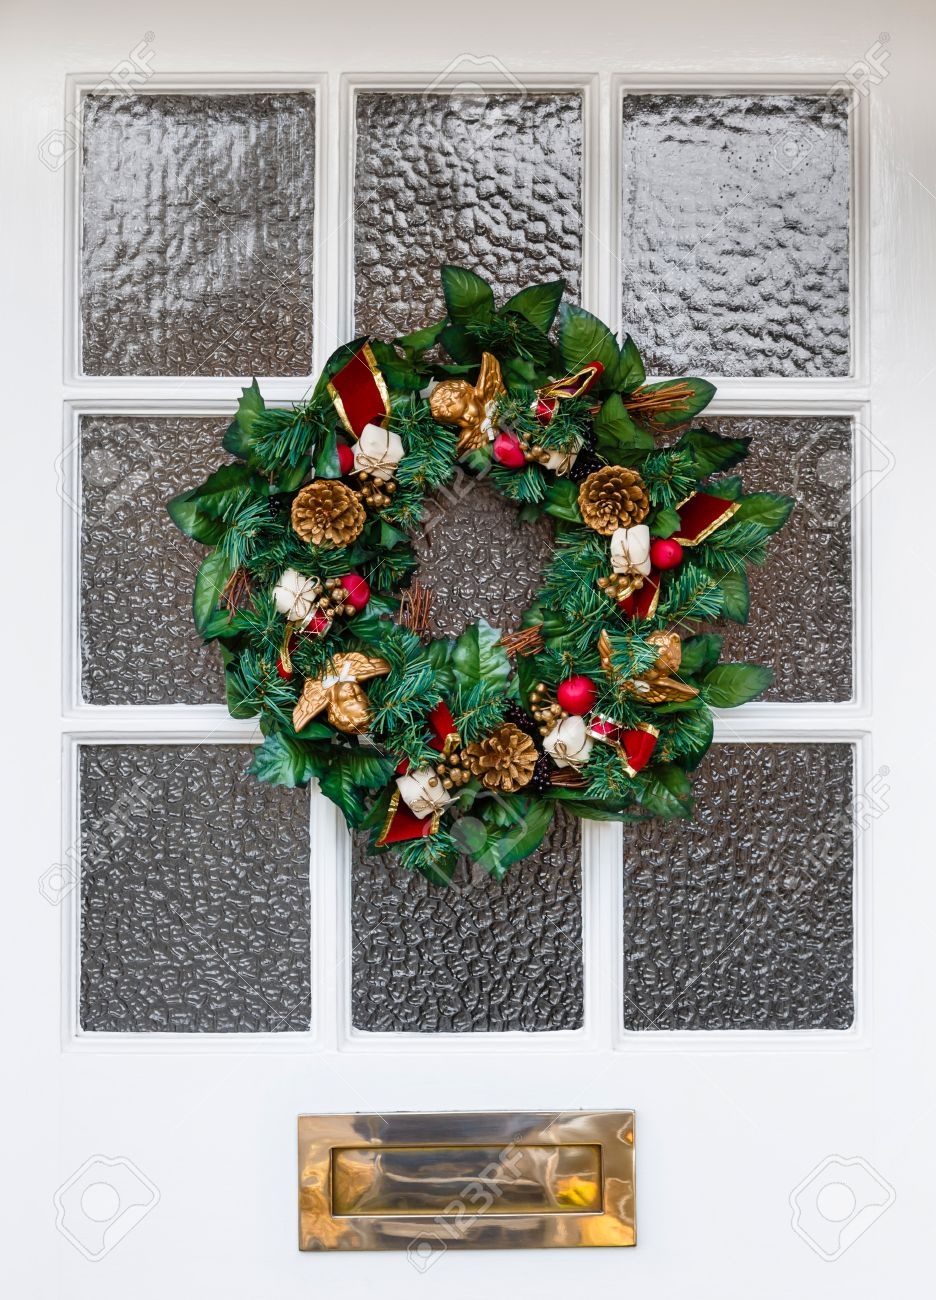 Front door christmas wreaths - Christmas Wreath On Front Door Of A House Stock Photo 23178160